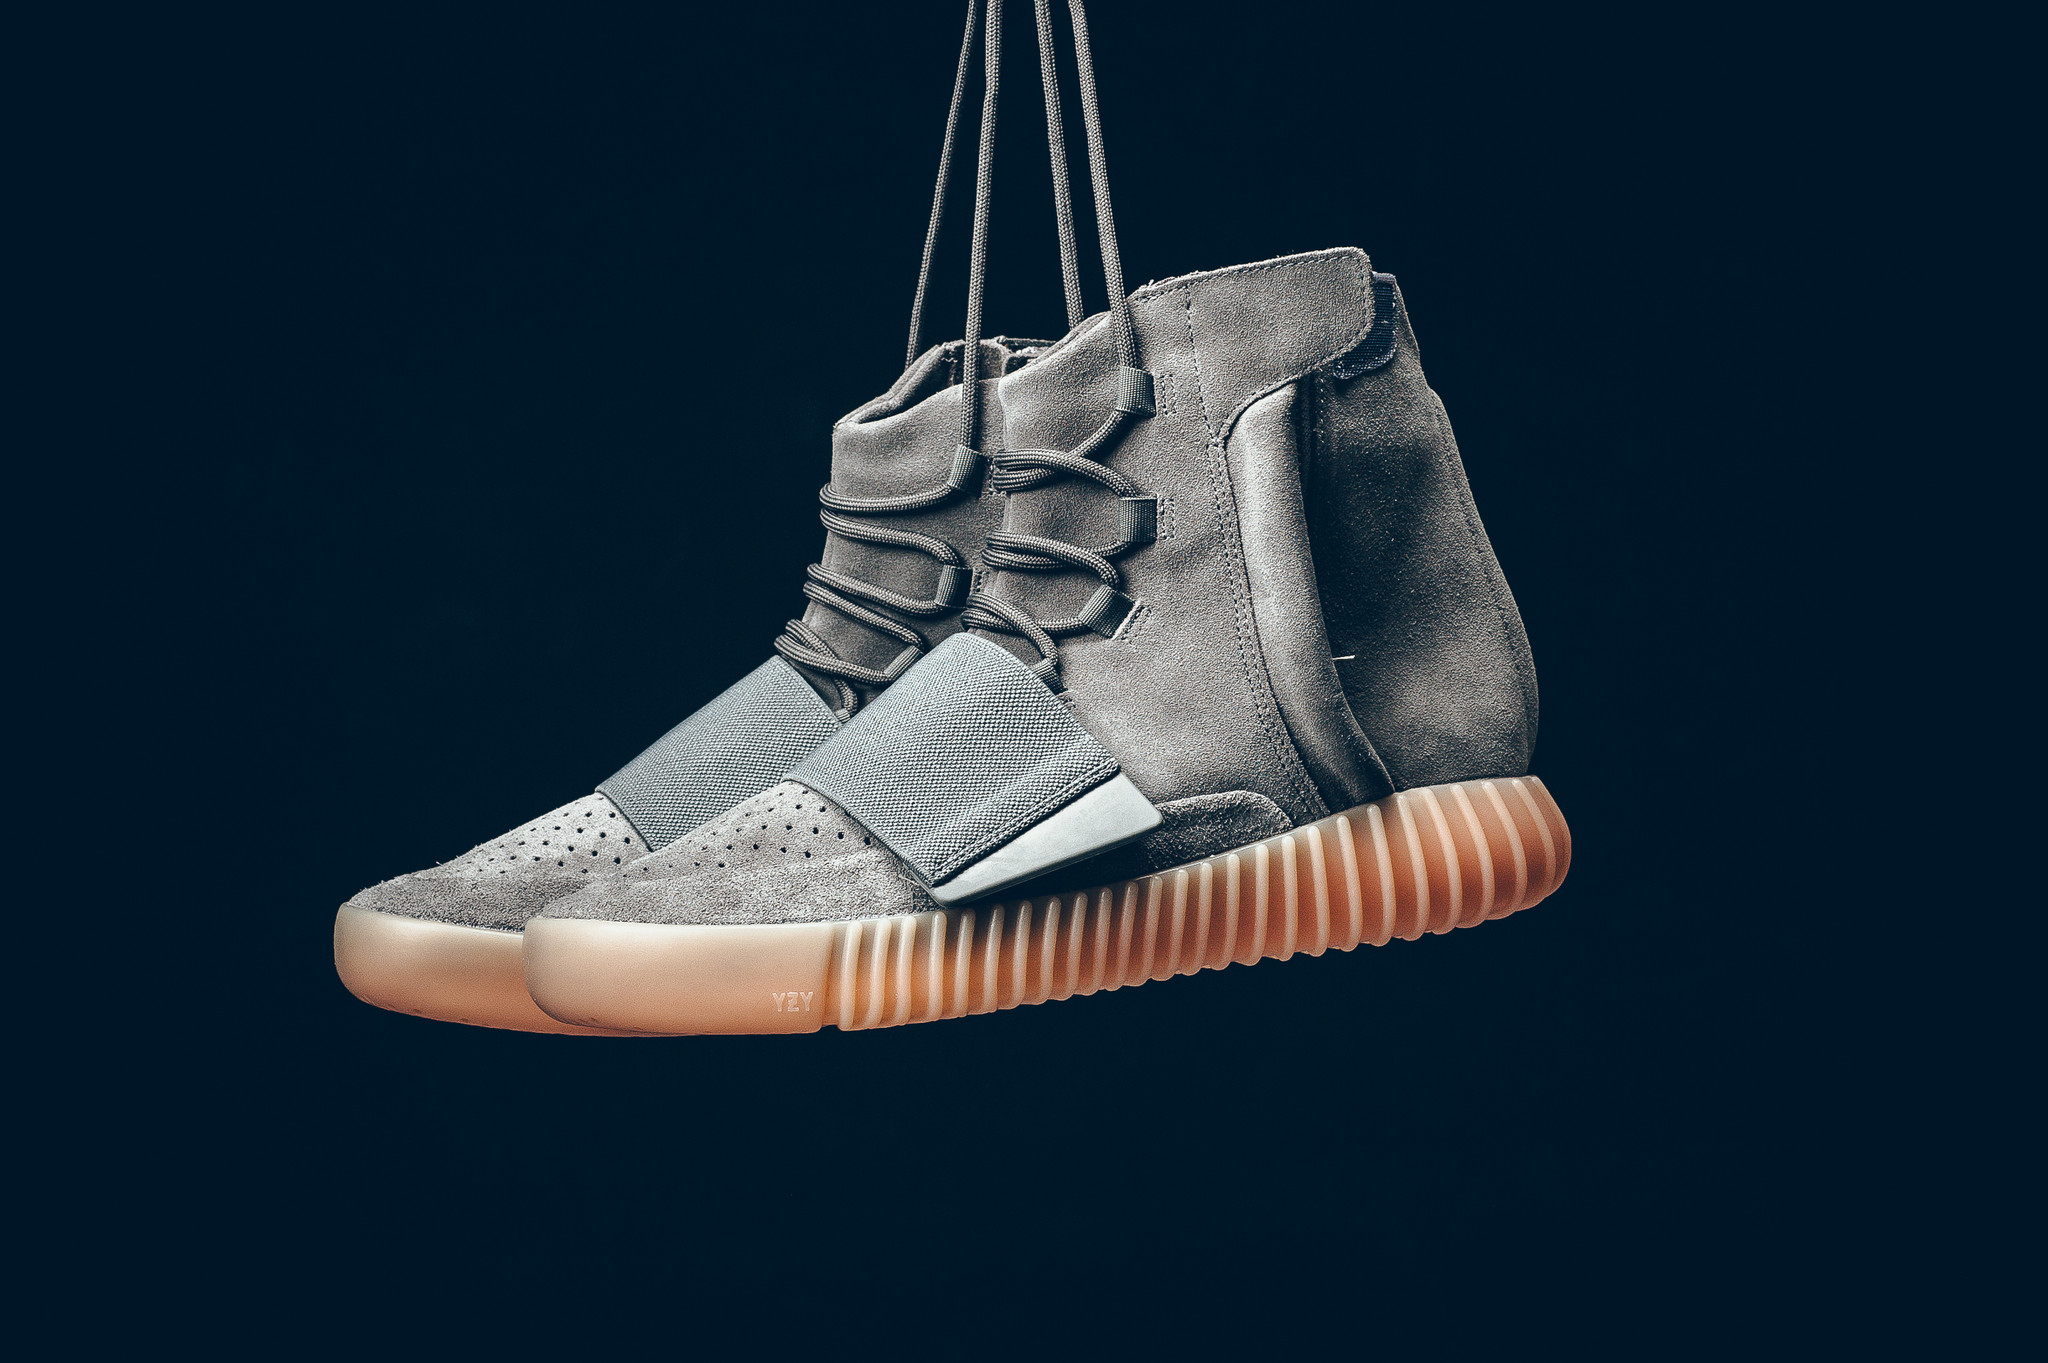 Yeezy Boost 750s Are Basically Impossible to Get bdd6ec13fc